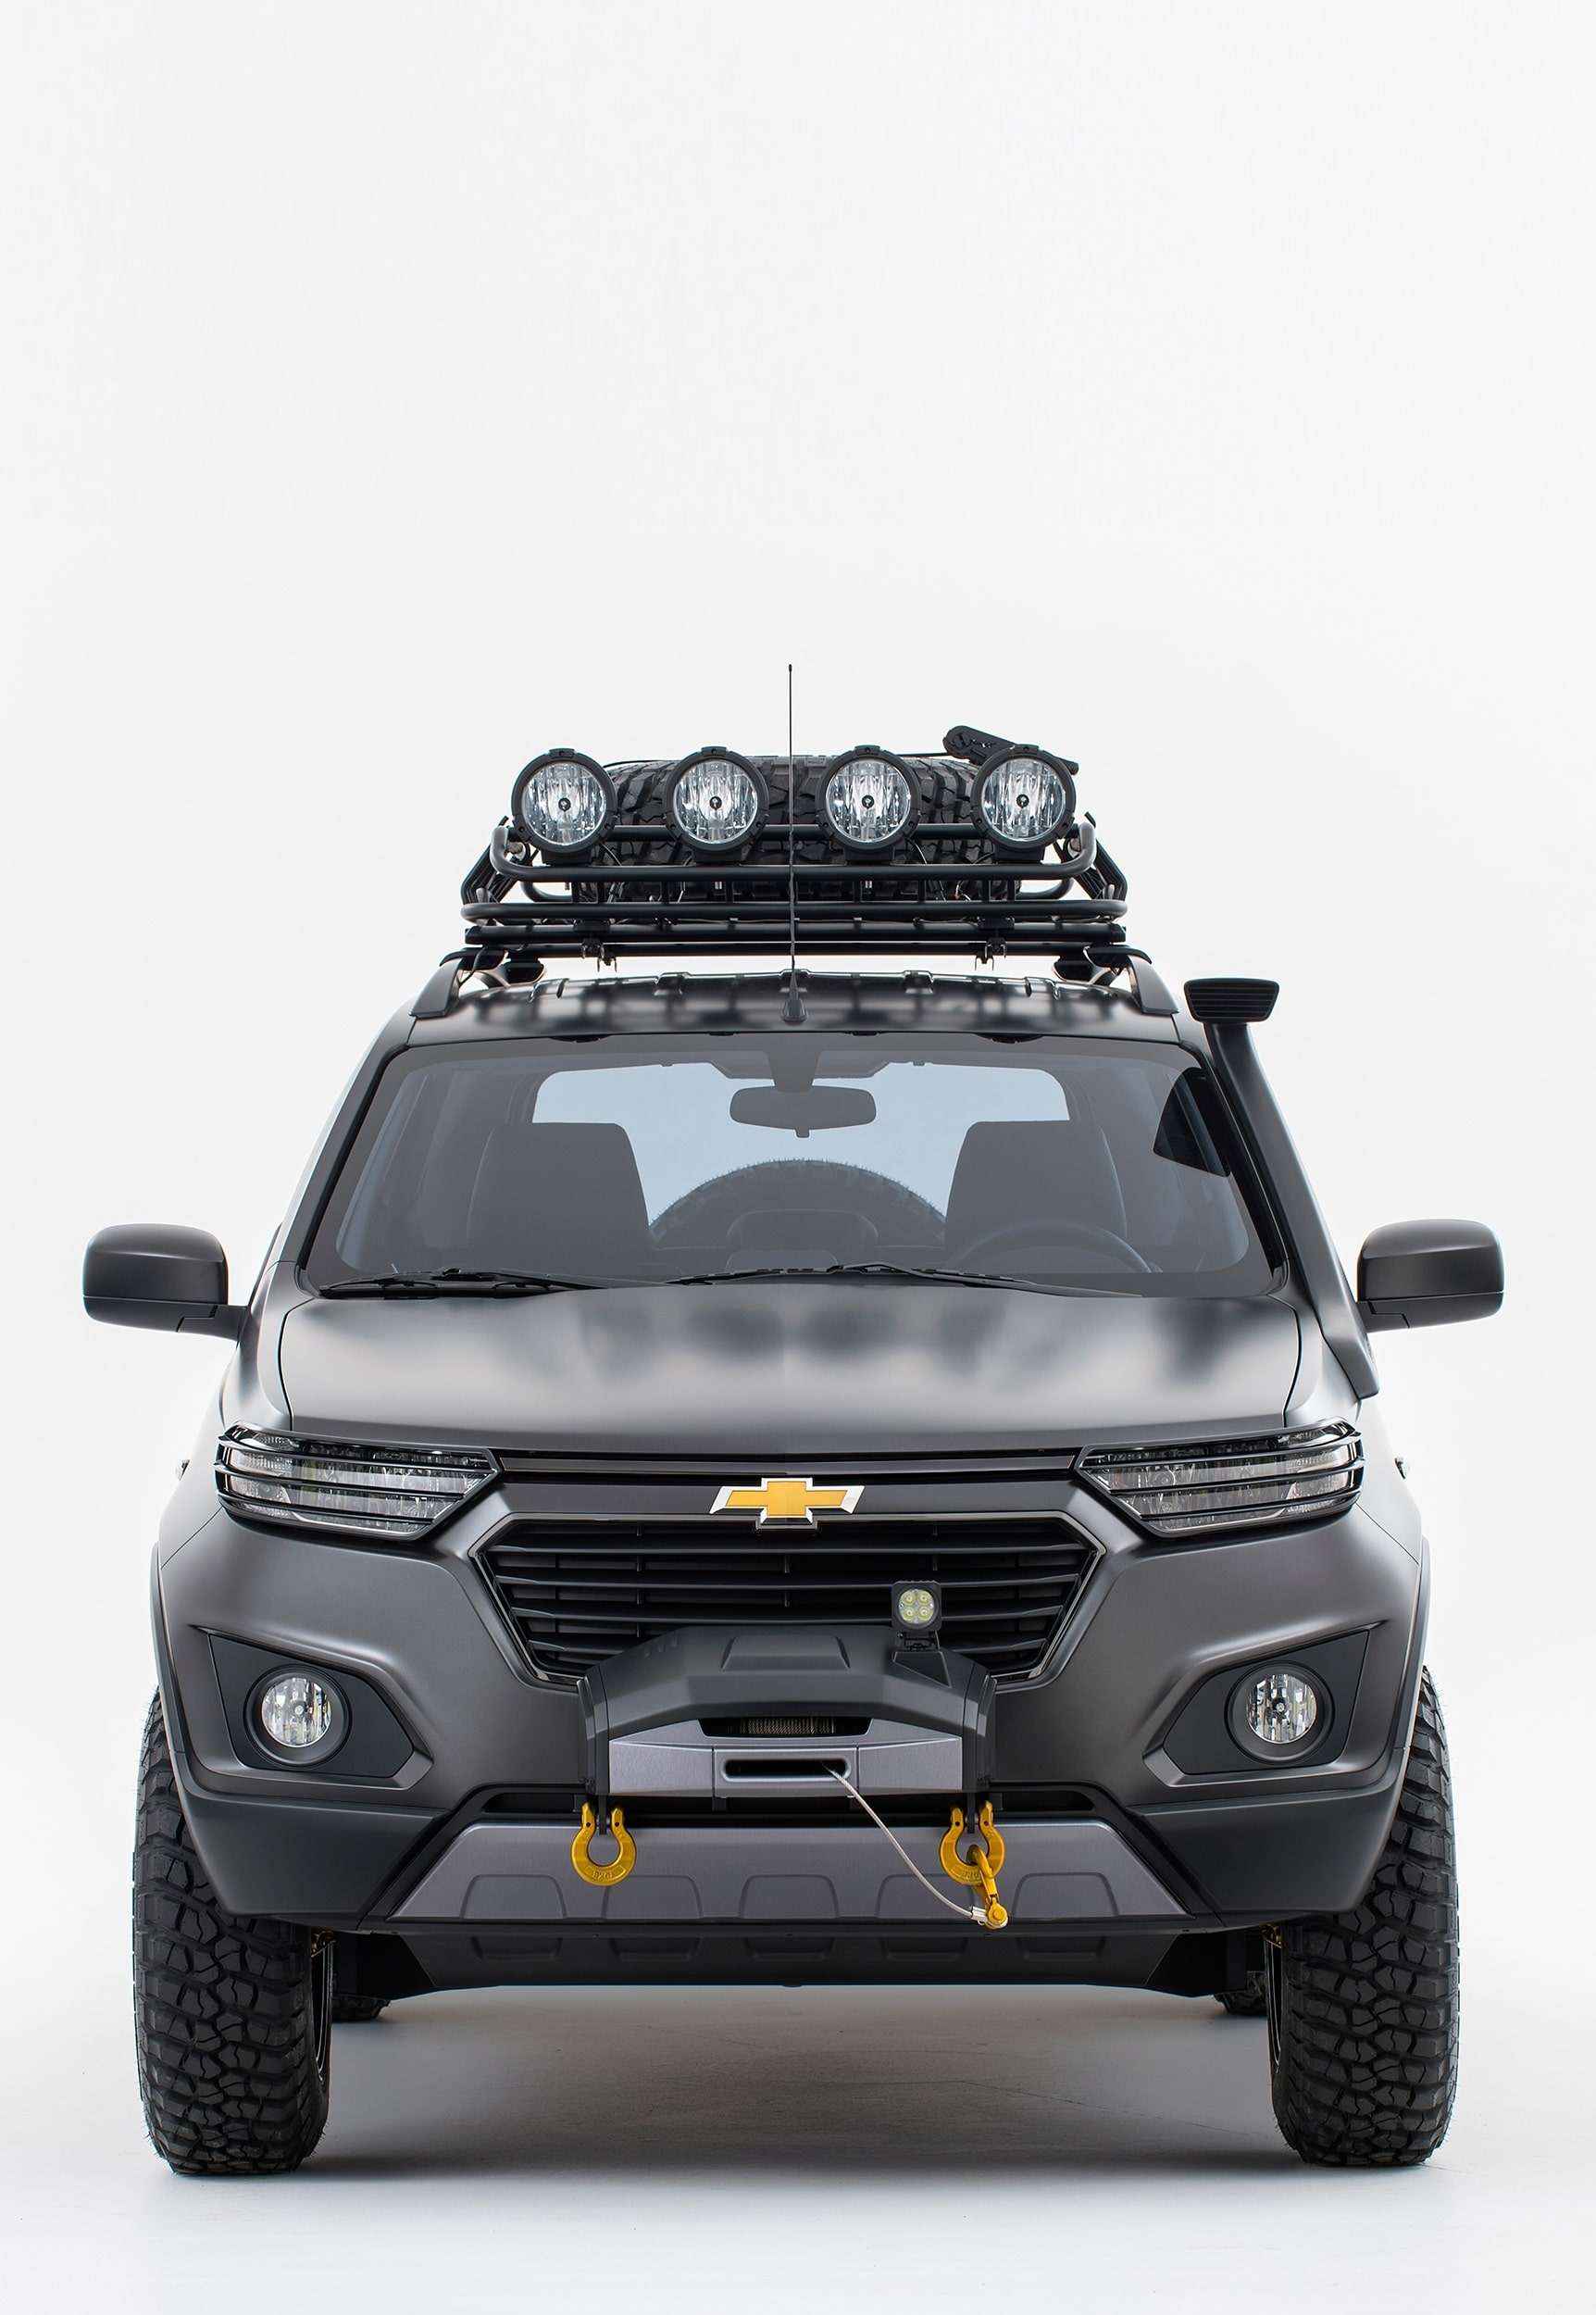 Chevrolet Niva 2 For mobile